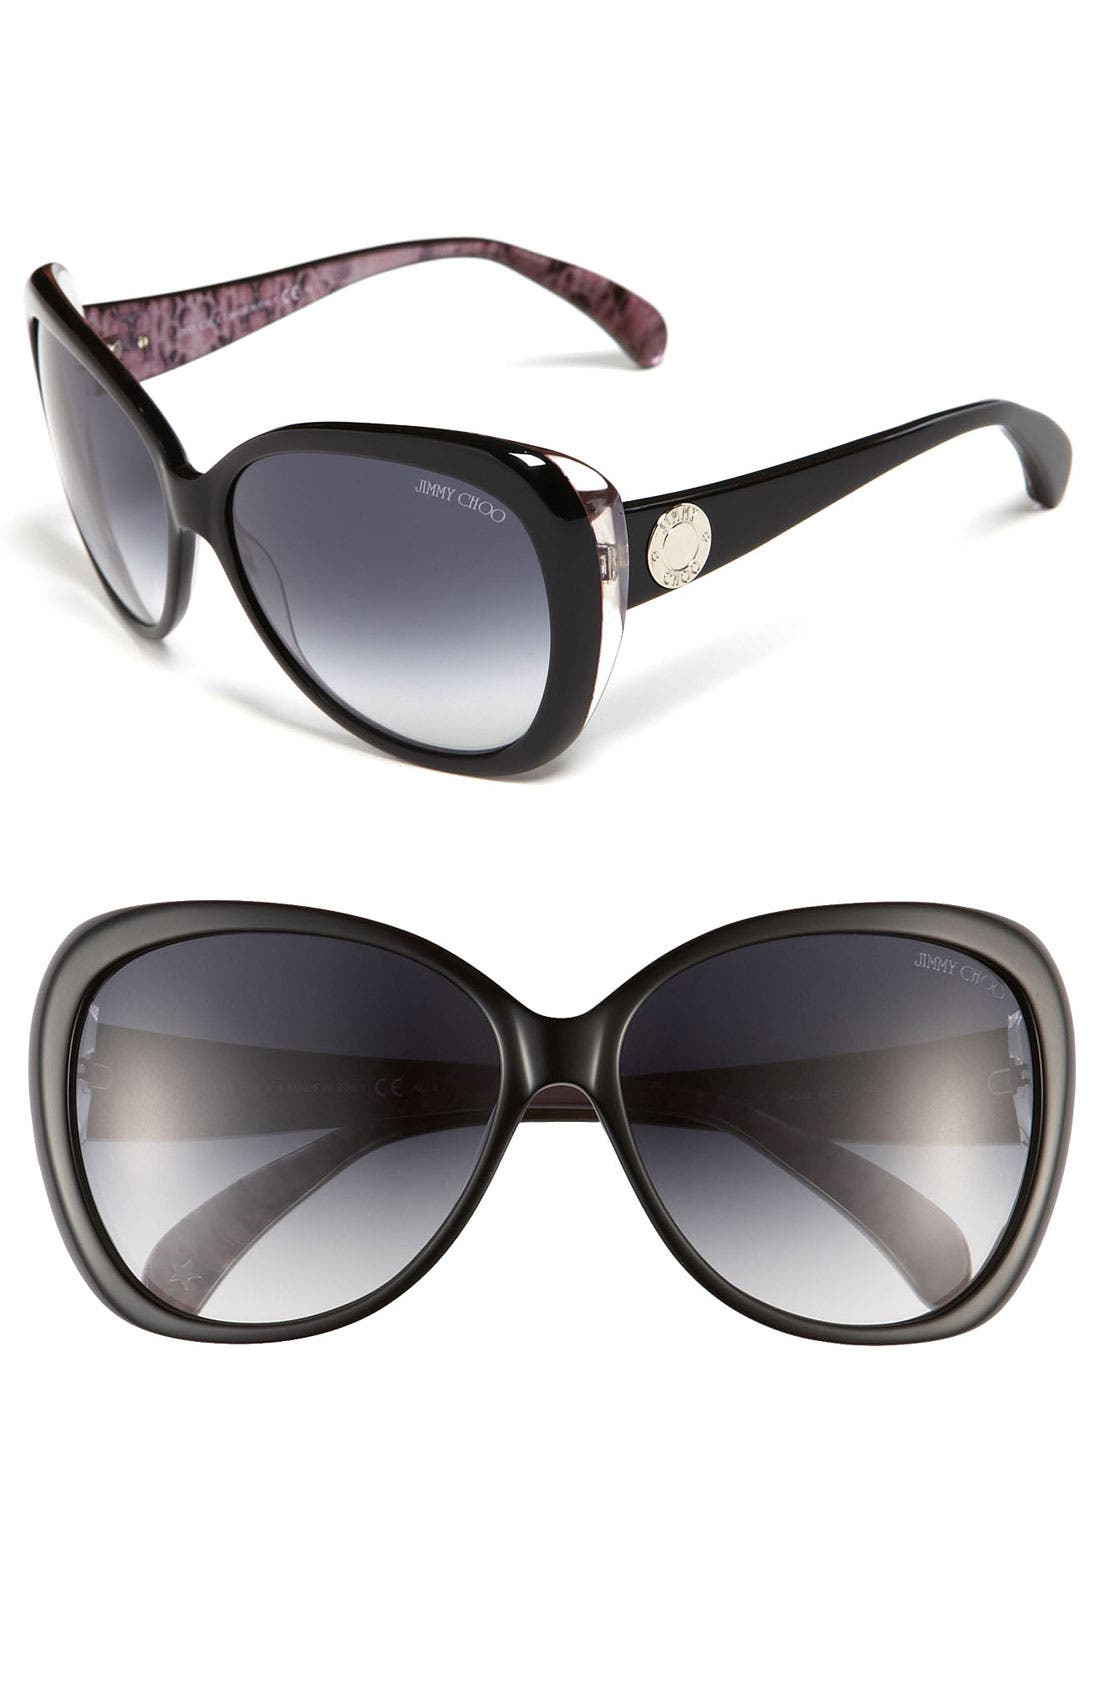 Alternate Image 1 Selected - Jimmy Choo 'Julie' Cat's Eye Sunglasses